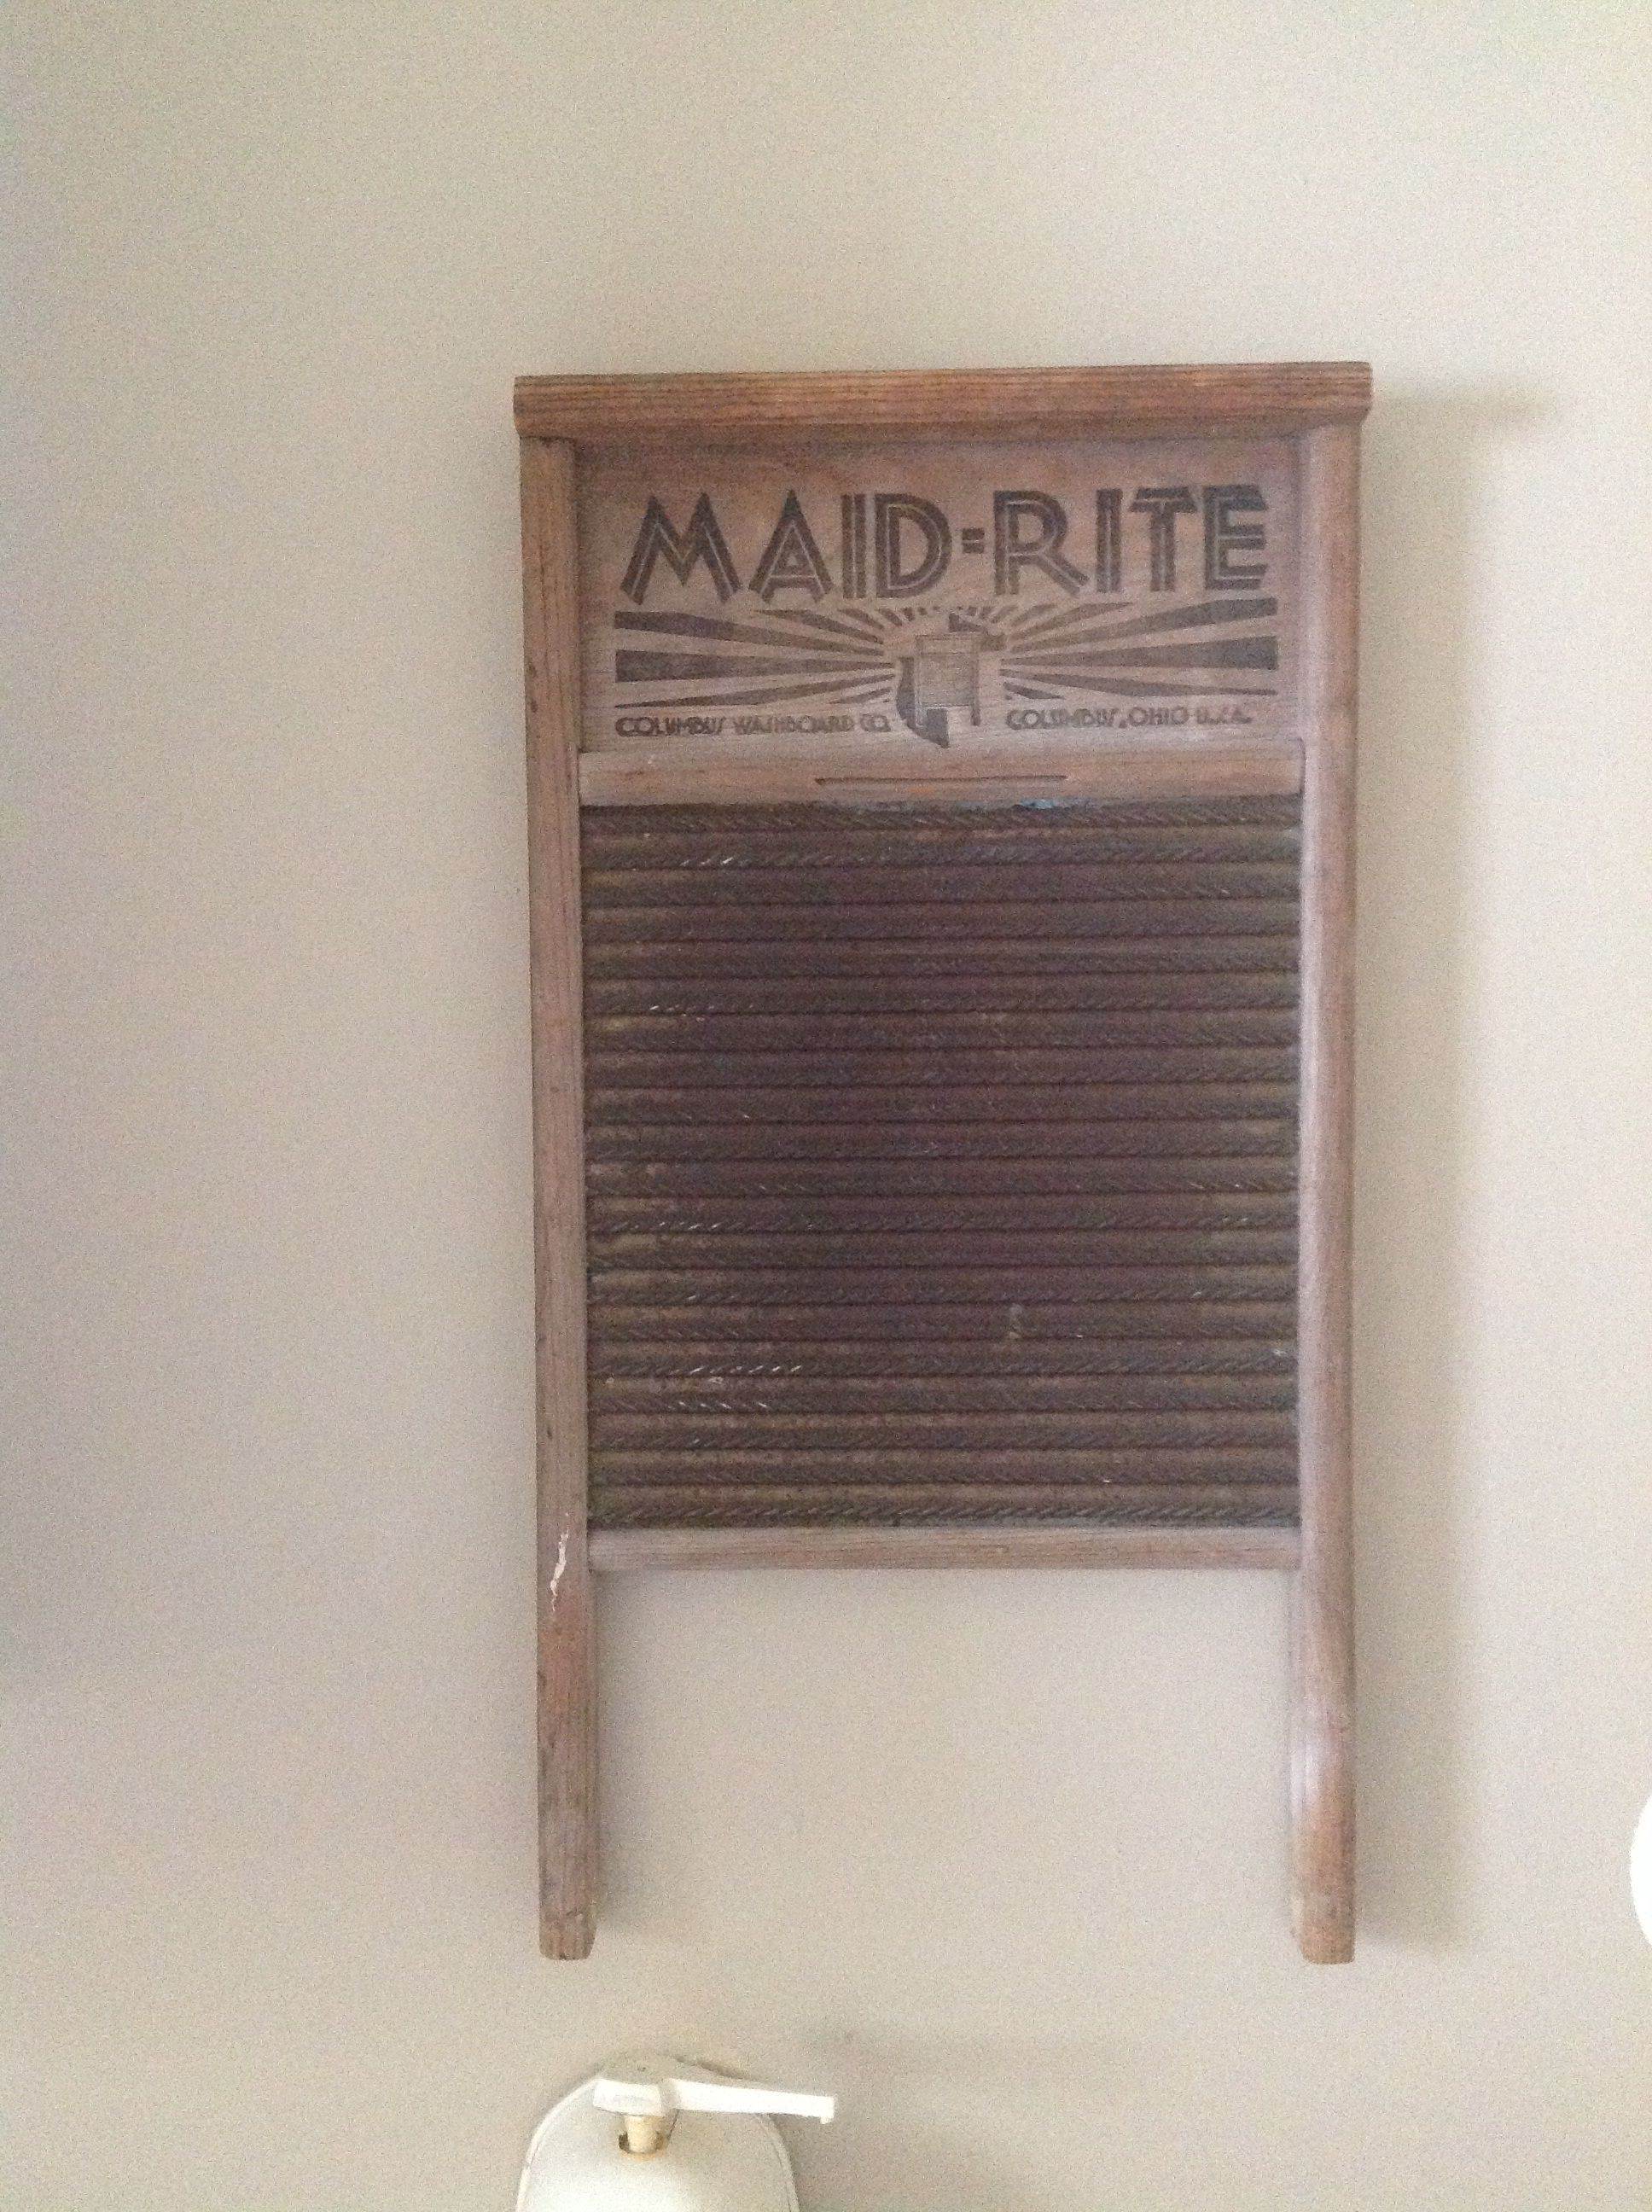 Hangs in my laundry room,can't imagine using one of these to get stains out.